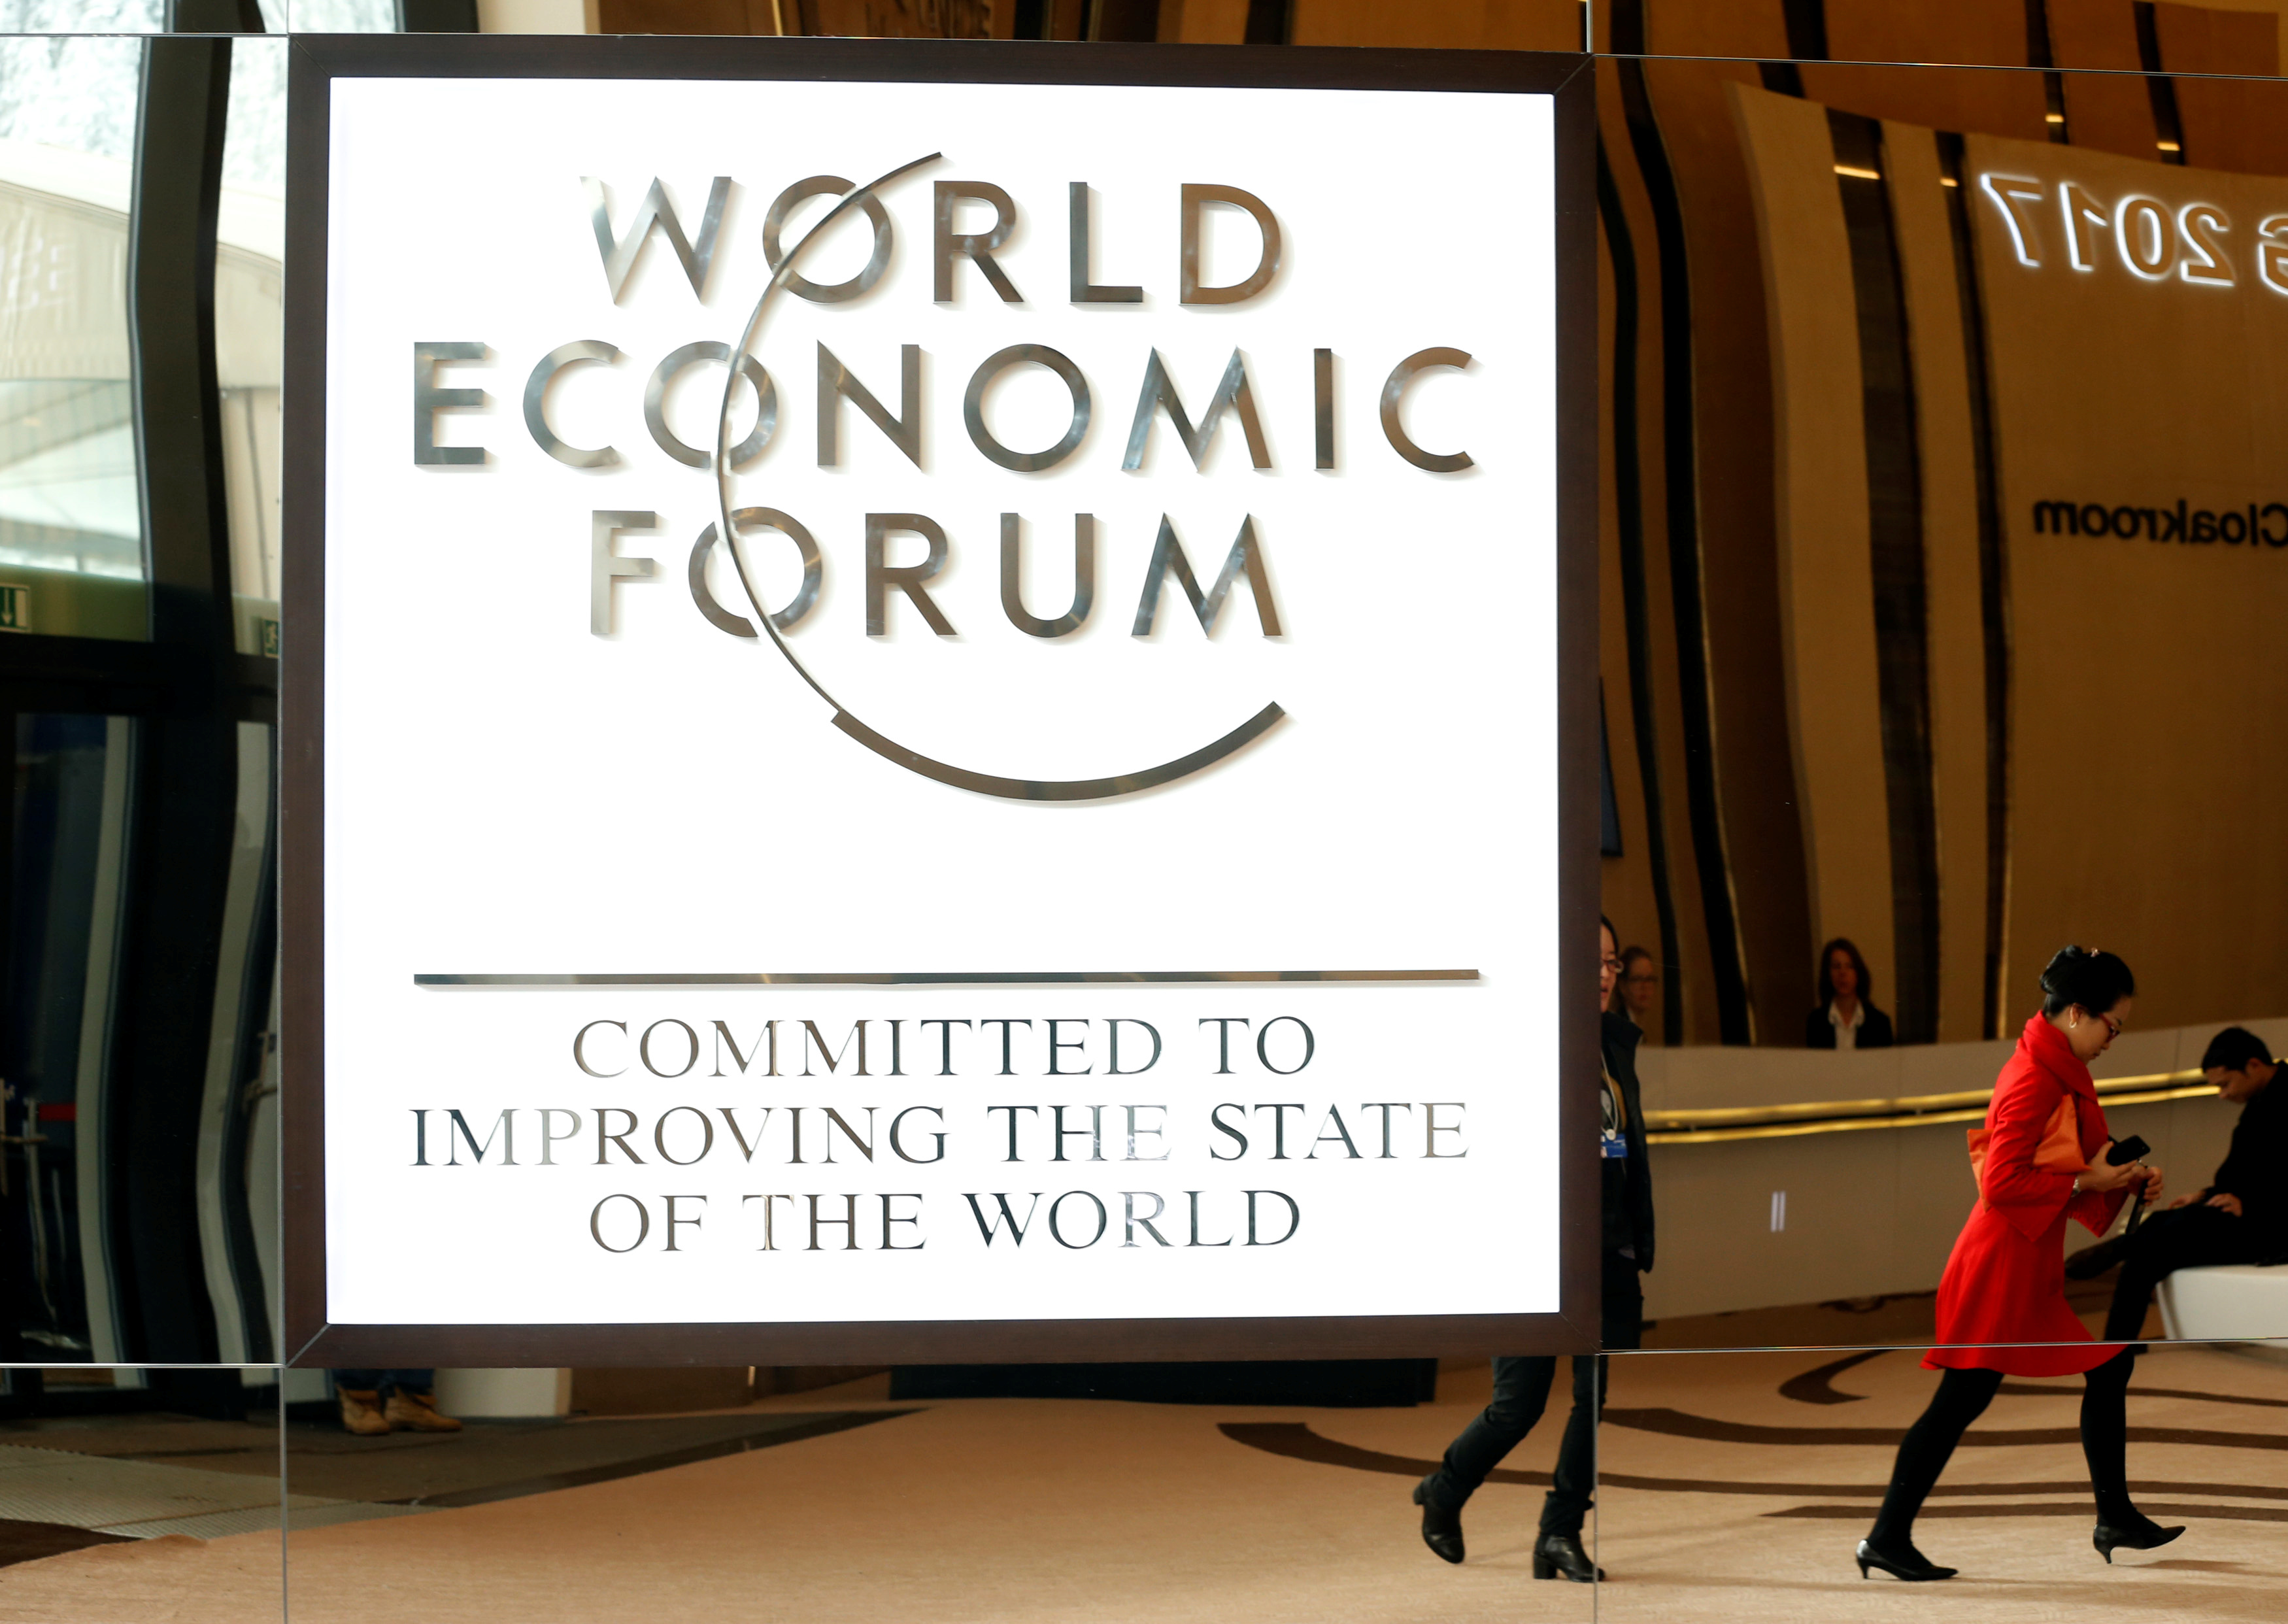 The logo of the World Economic Forum is seen in the congress center of the annual meeting of the World Economic Forum (WEF) in Davos